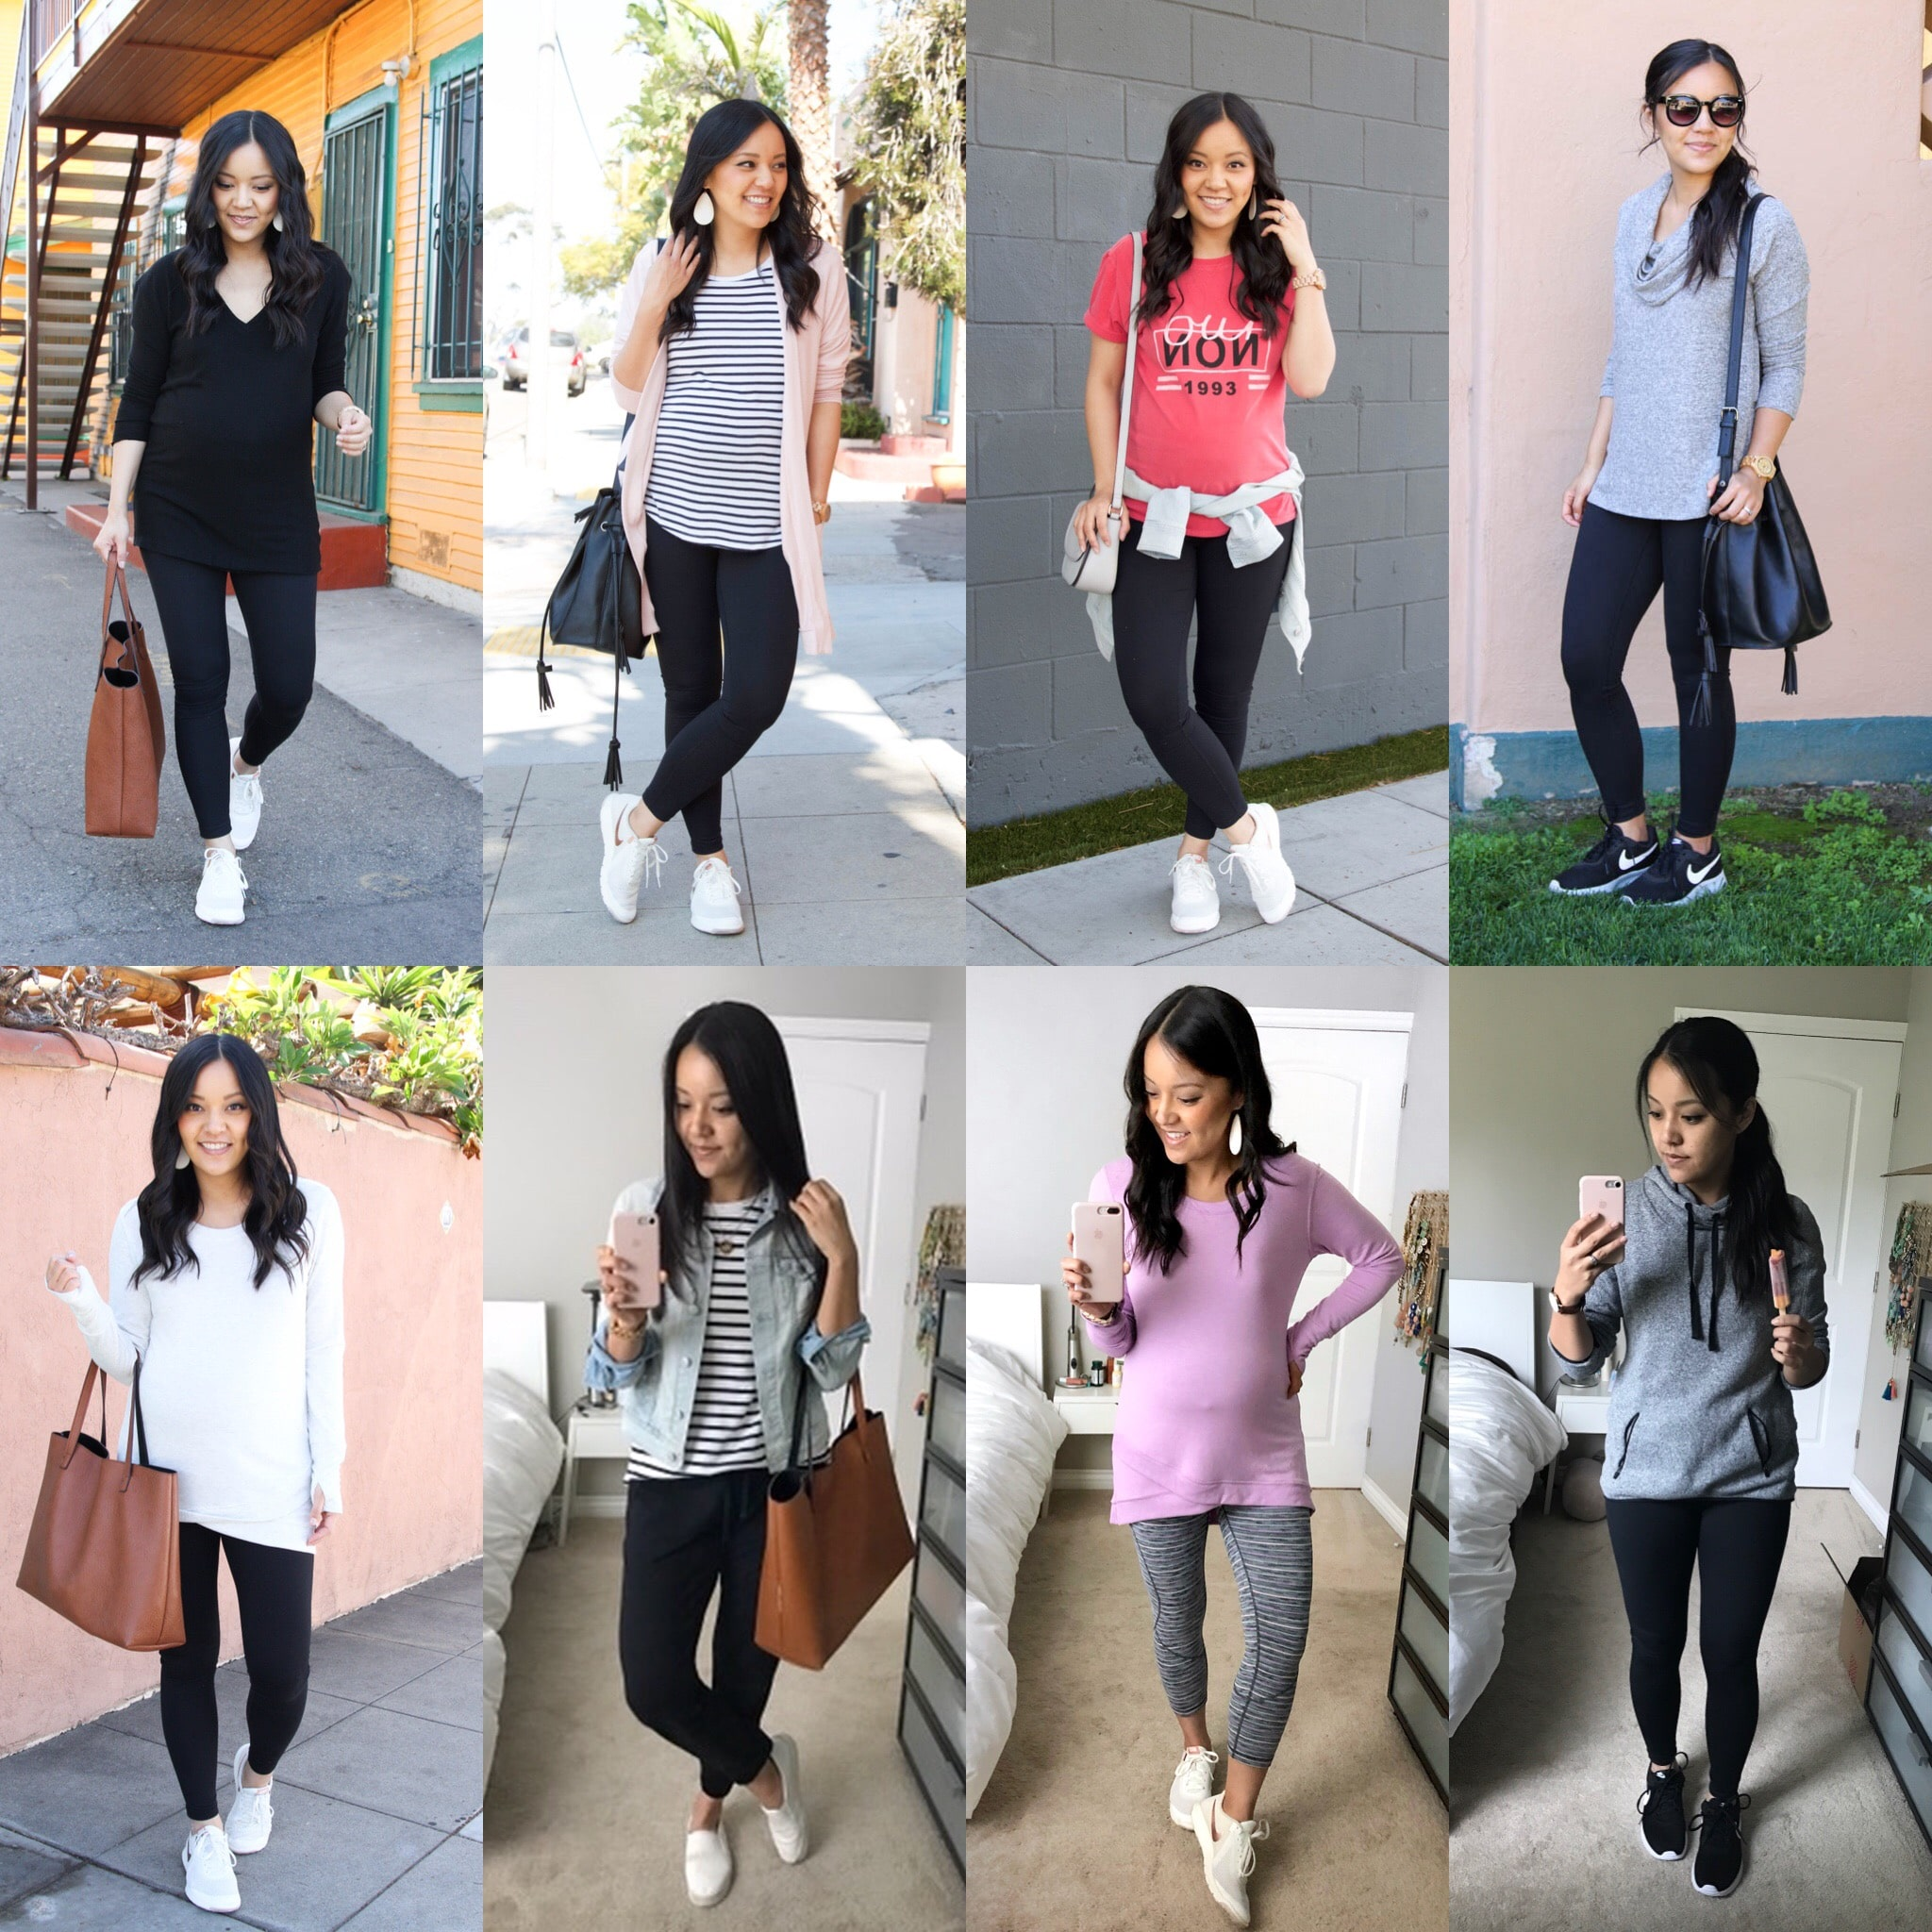 Spring Style Profile: Basic Building Blocks for Athleisure Outfits